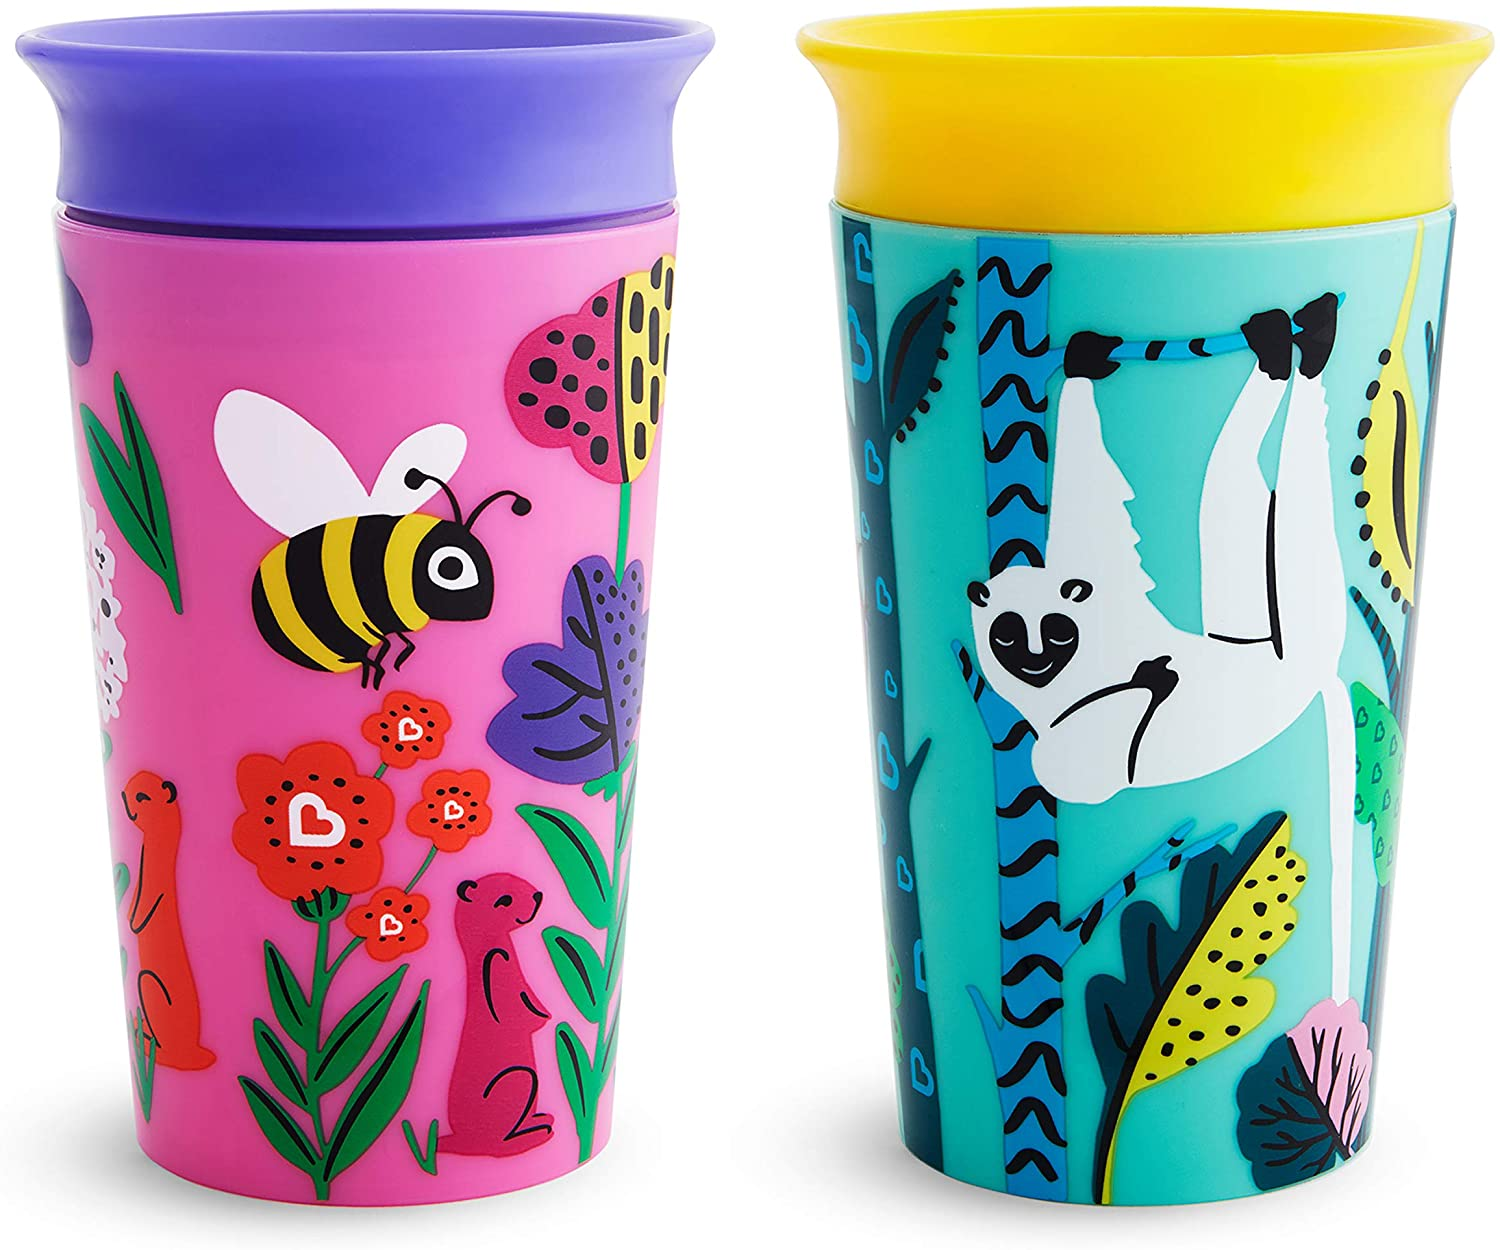 Munchkin Miracle 360 WildLove Sippy Cup, 9 oz / 266 ml, 2 Pack, Polar Bear/Orca